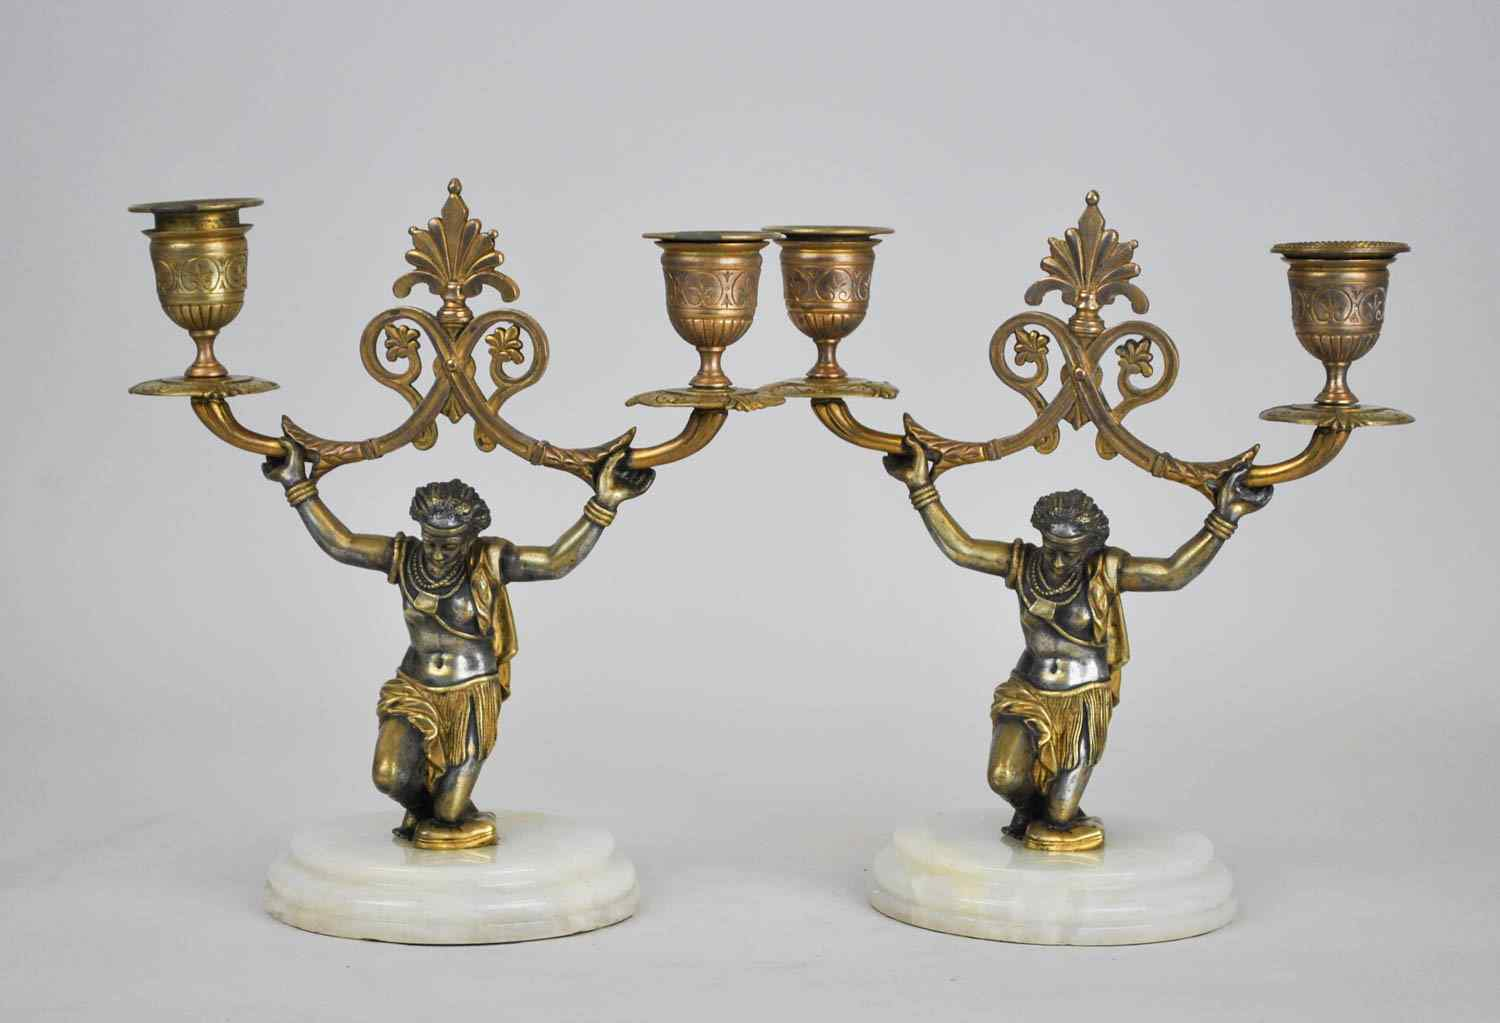 Pair Of Candelabra With Nubian, 19th Century